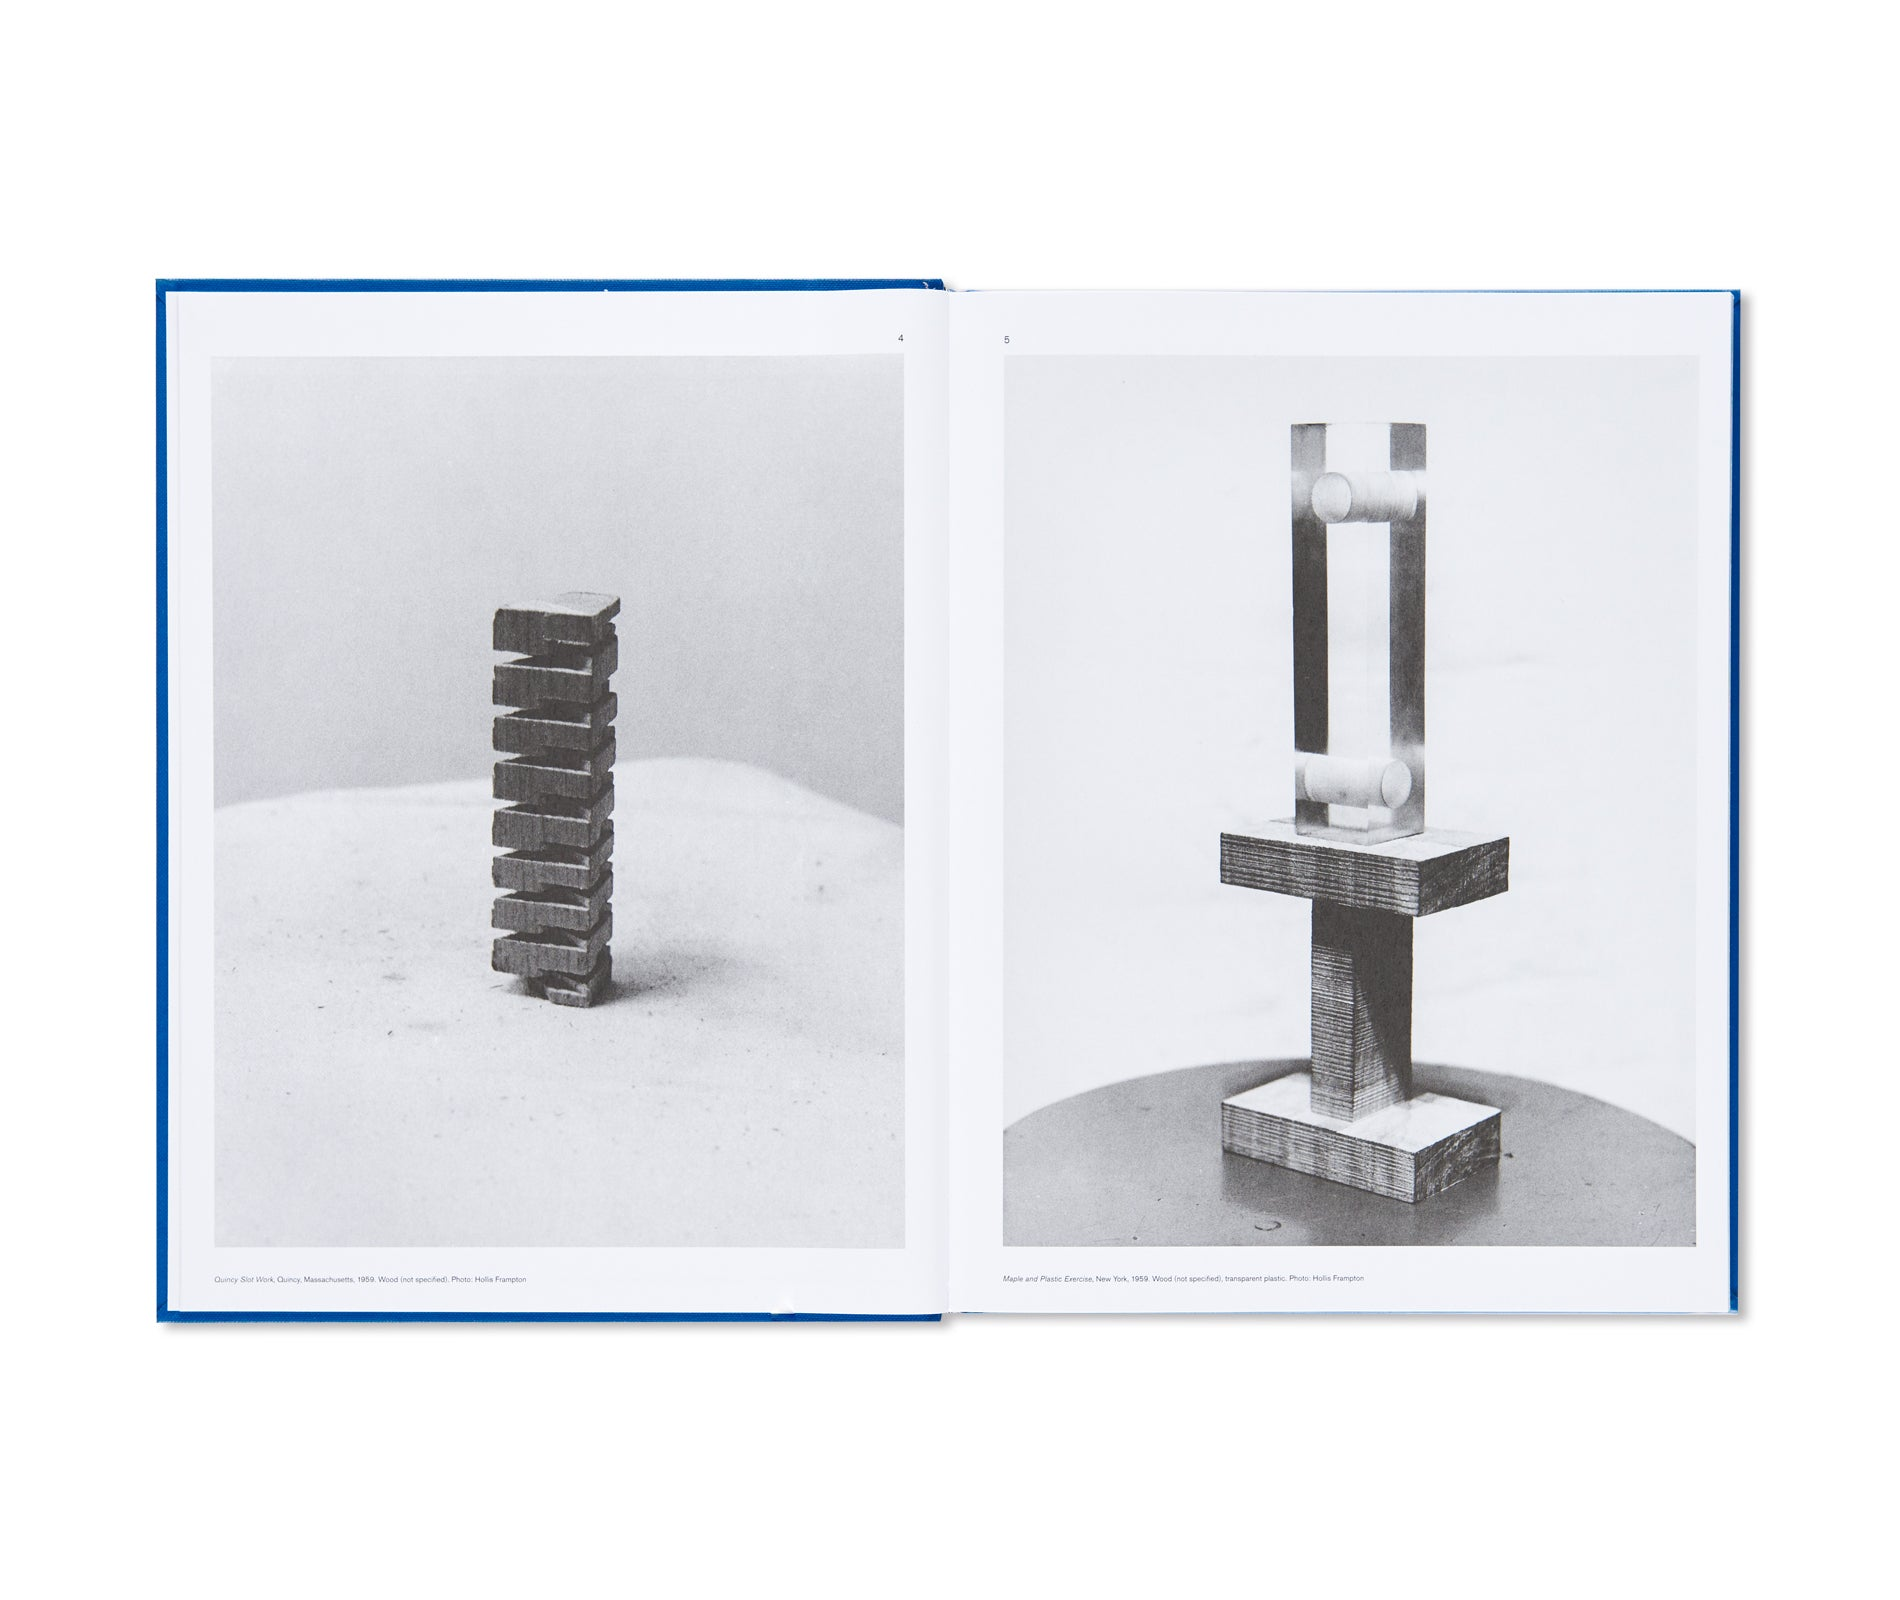 SCULPTURE AS PLACE, 1958–2010 by Carl Andre